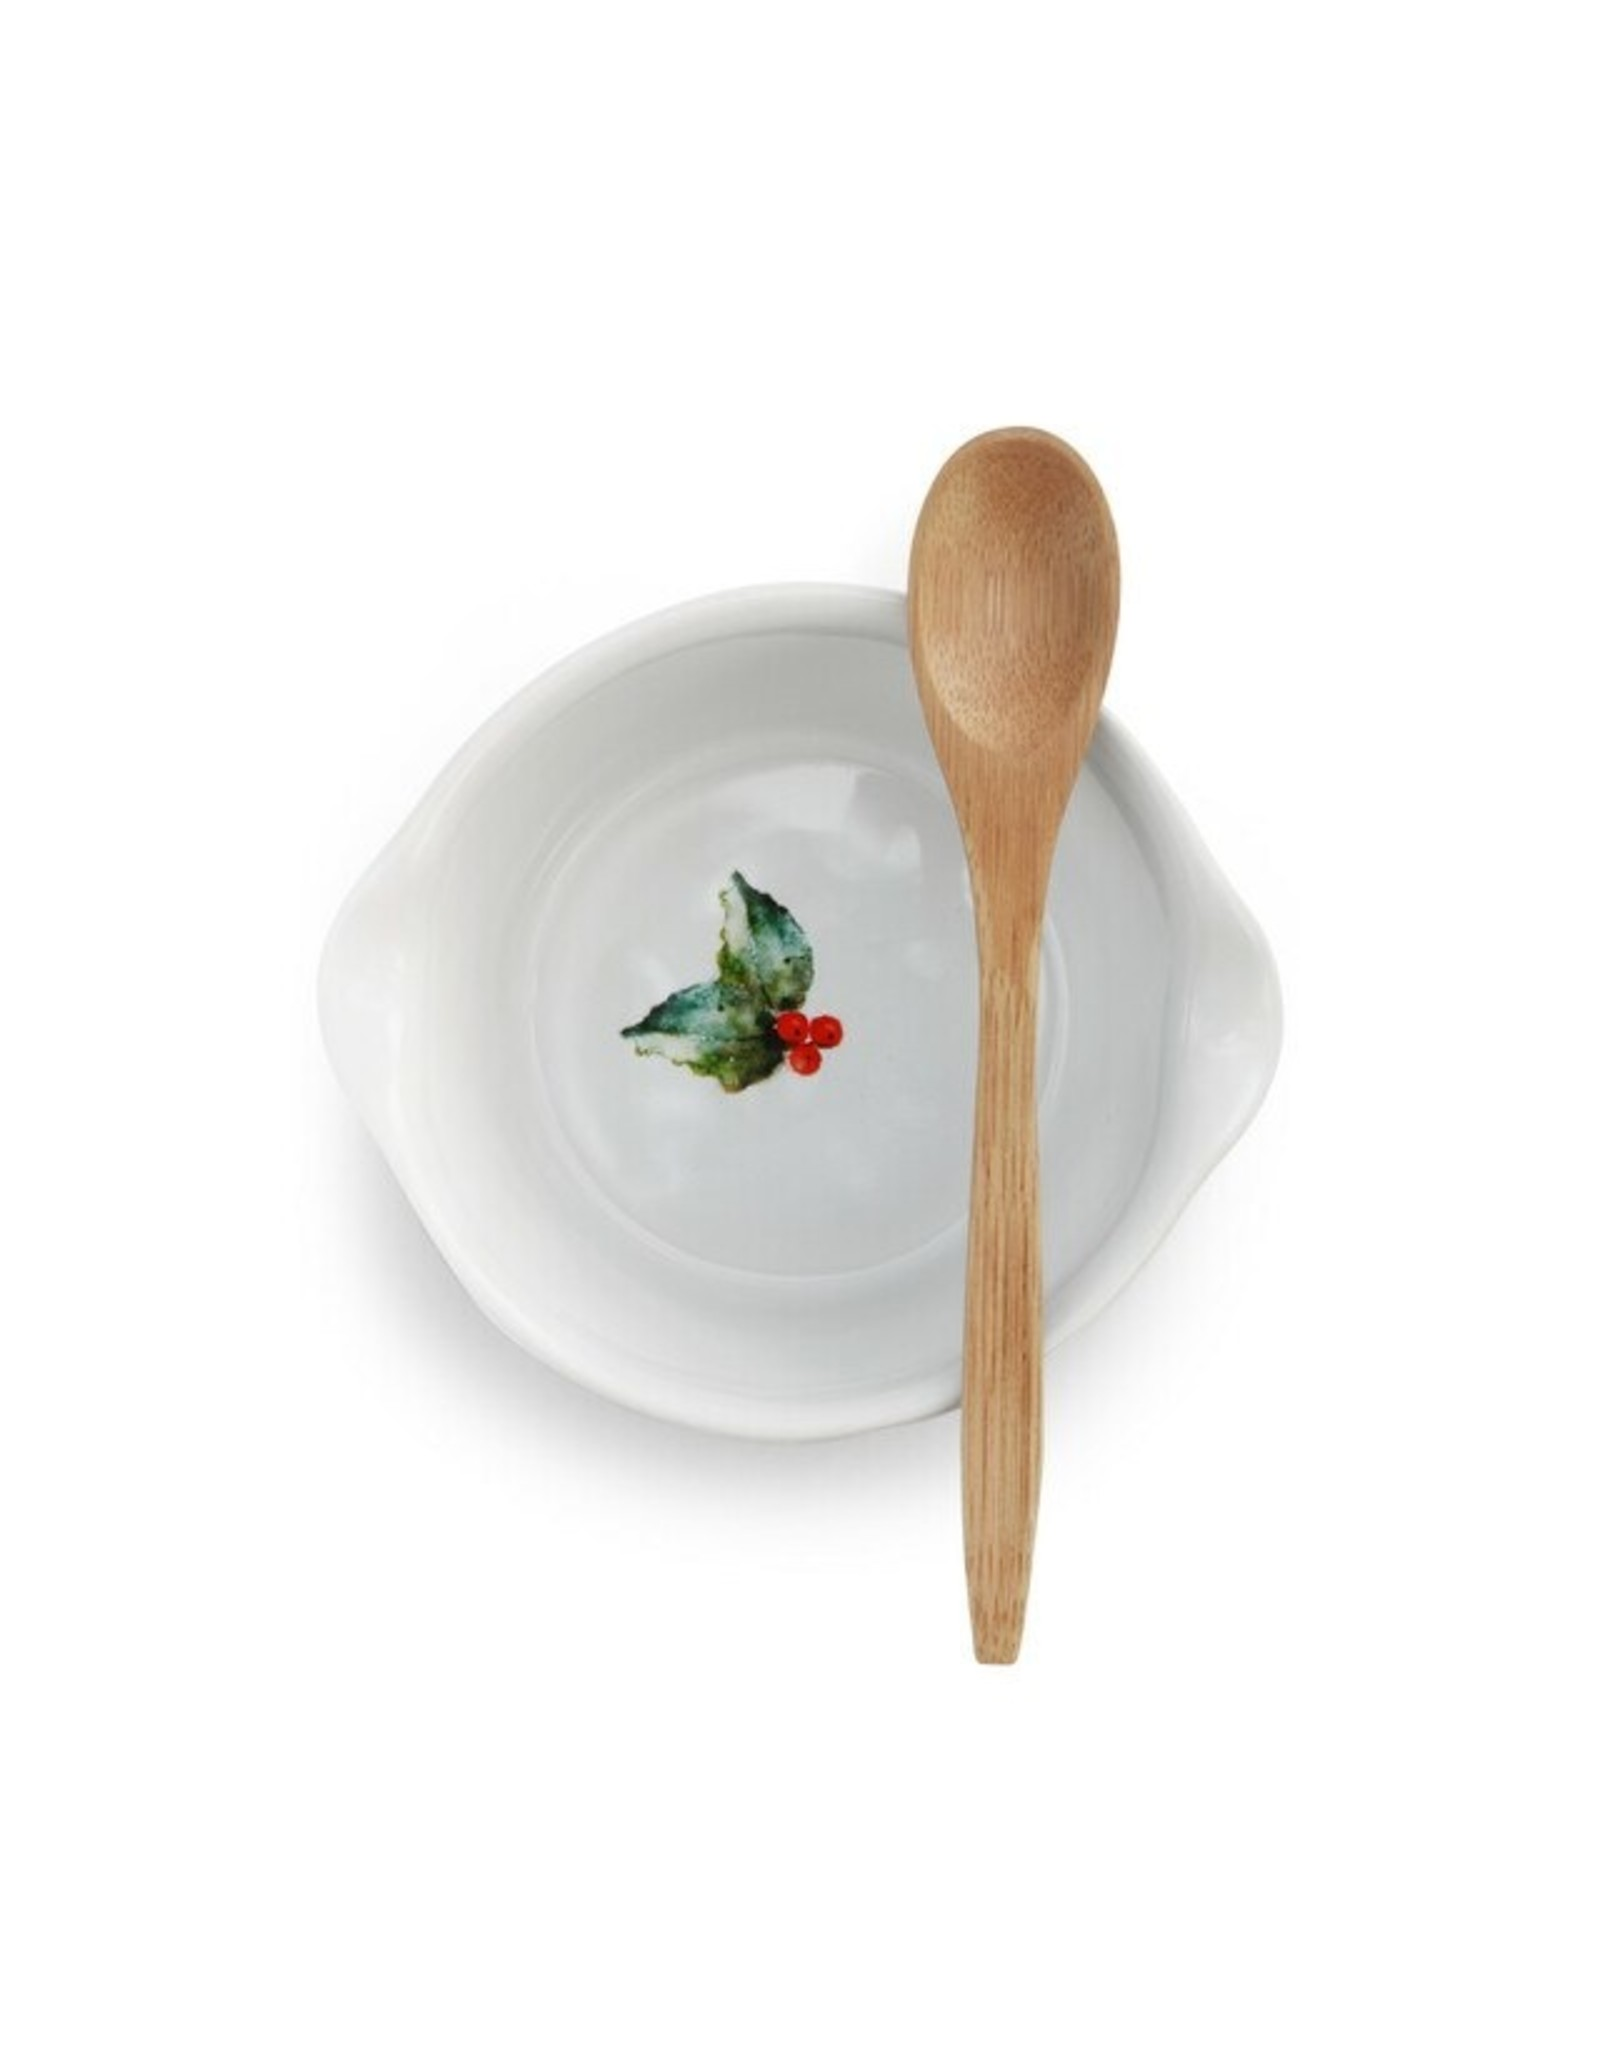 Demdaco CARDINAL AND HOLLY BOWL WITH SPOON